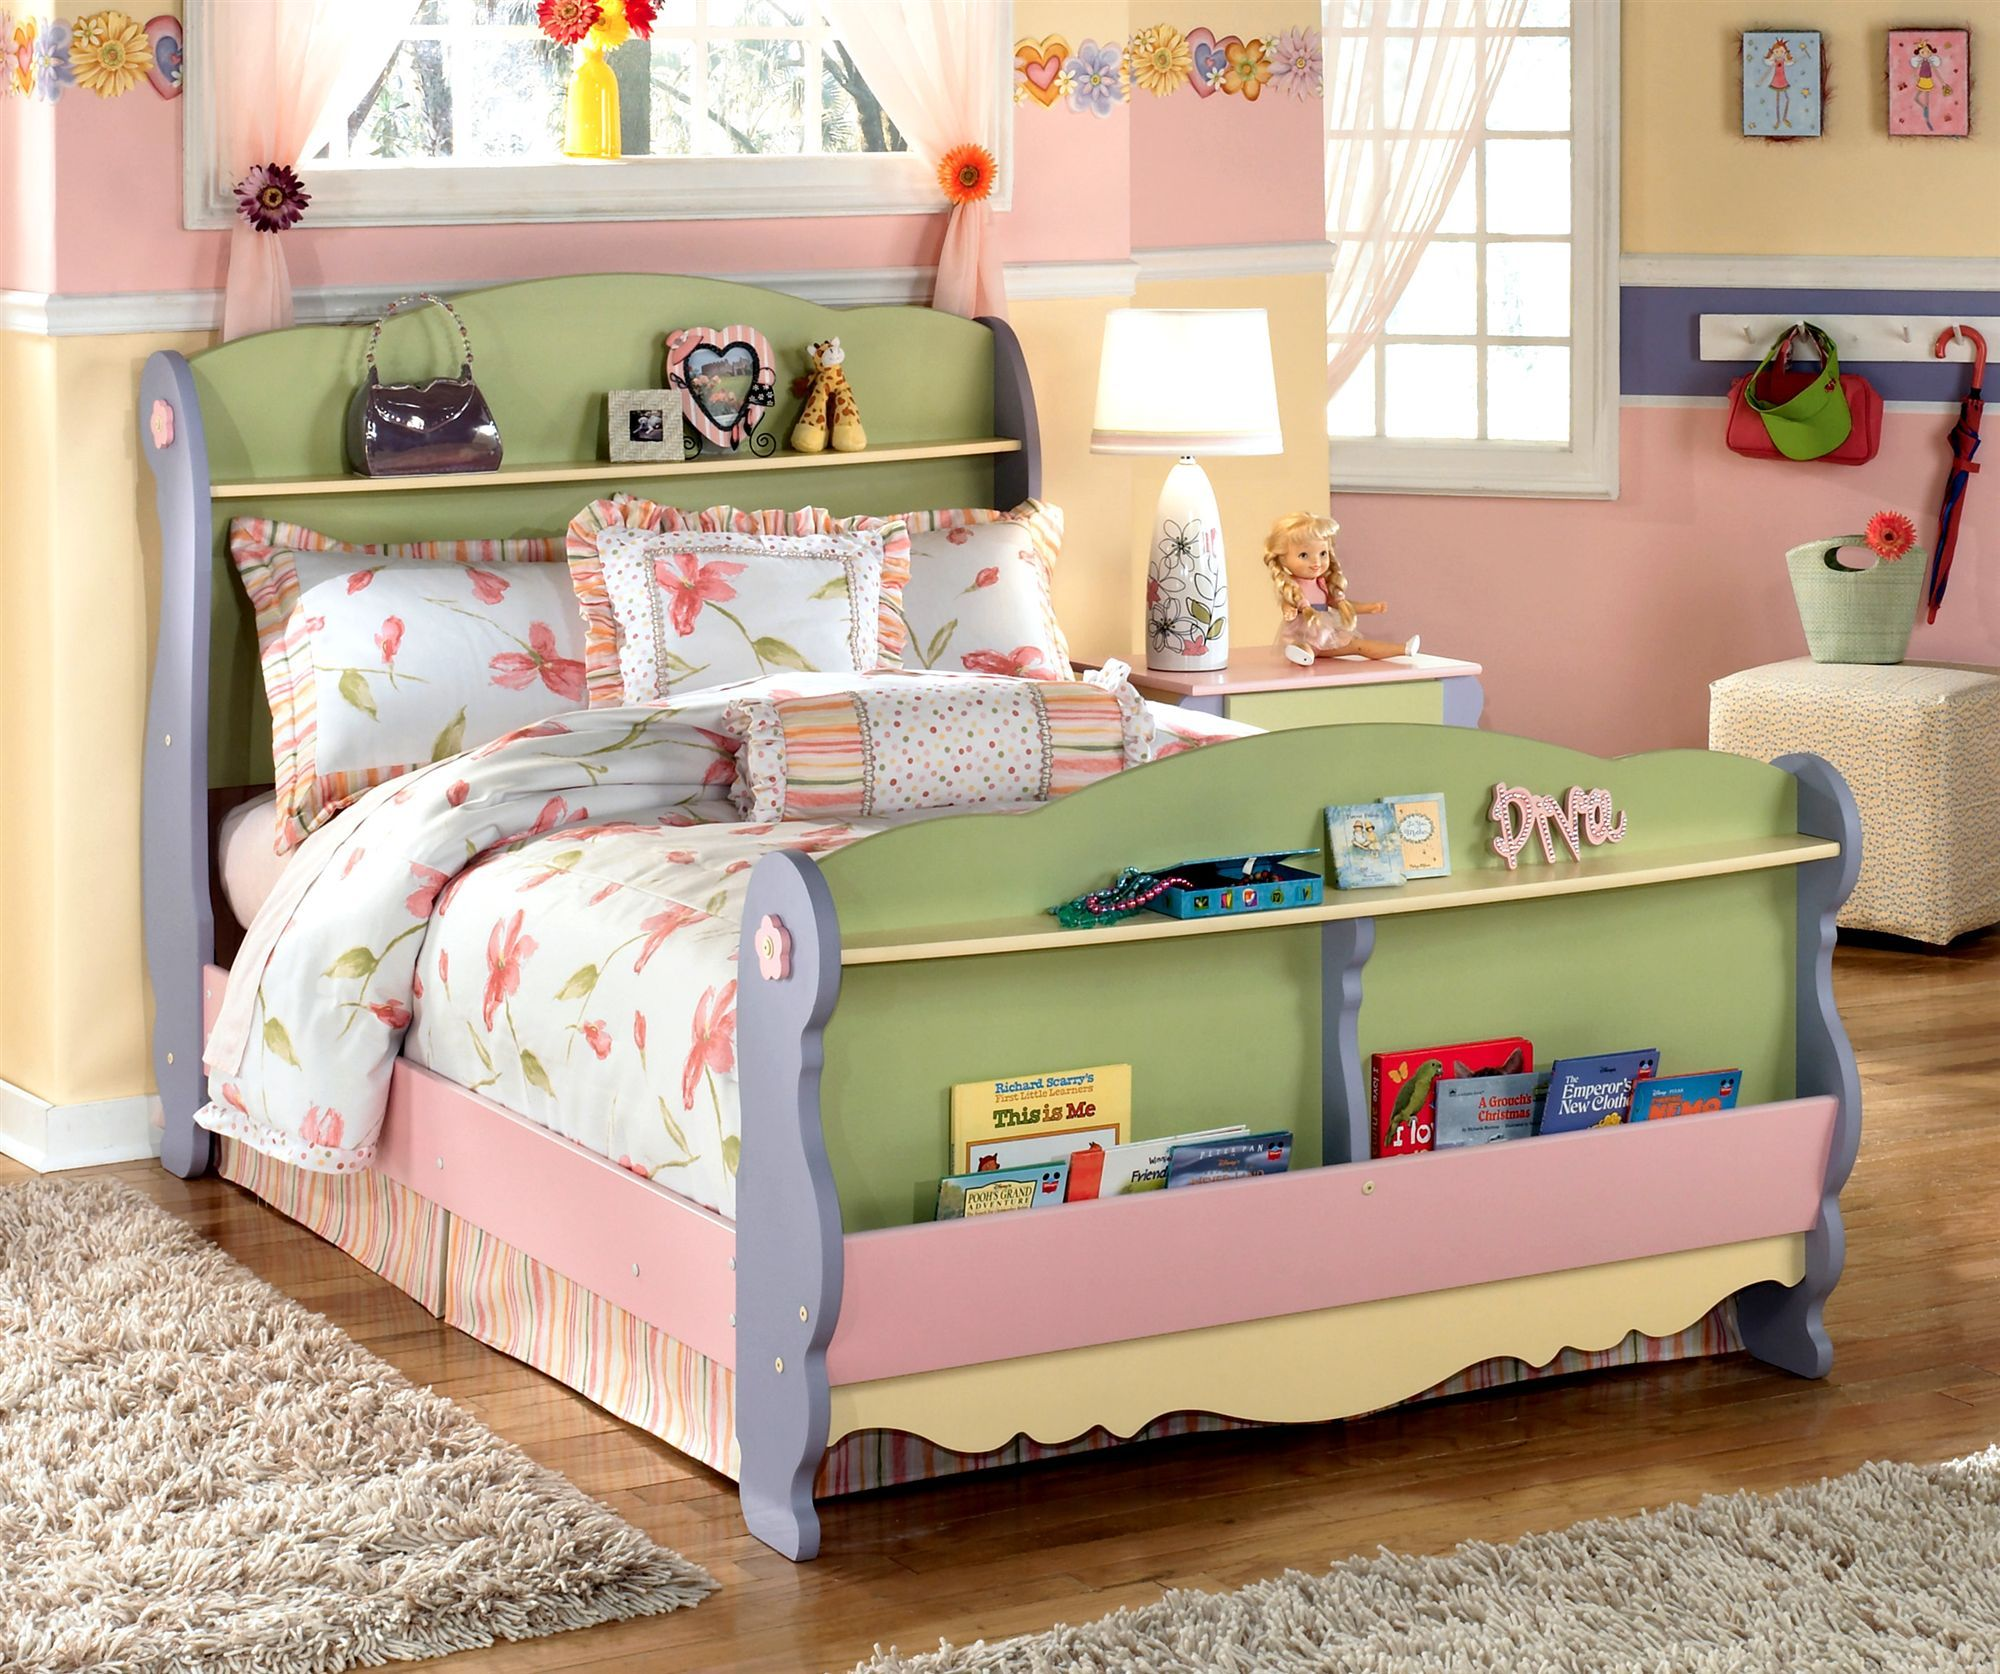 Images Of Bedroom Curtains Carpet Design For Bedroom Kids Bedroom Furniture Sets Bedroom Decor Ideas Diy: Cute Bookshelf Headboard Ideas With Beautiful Color Scheme